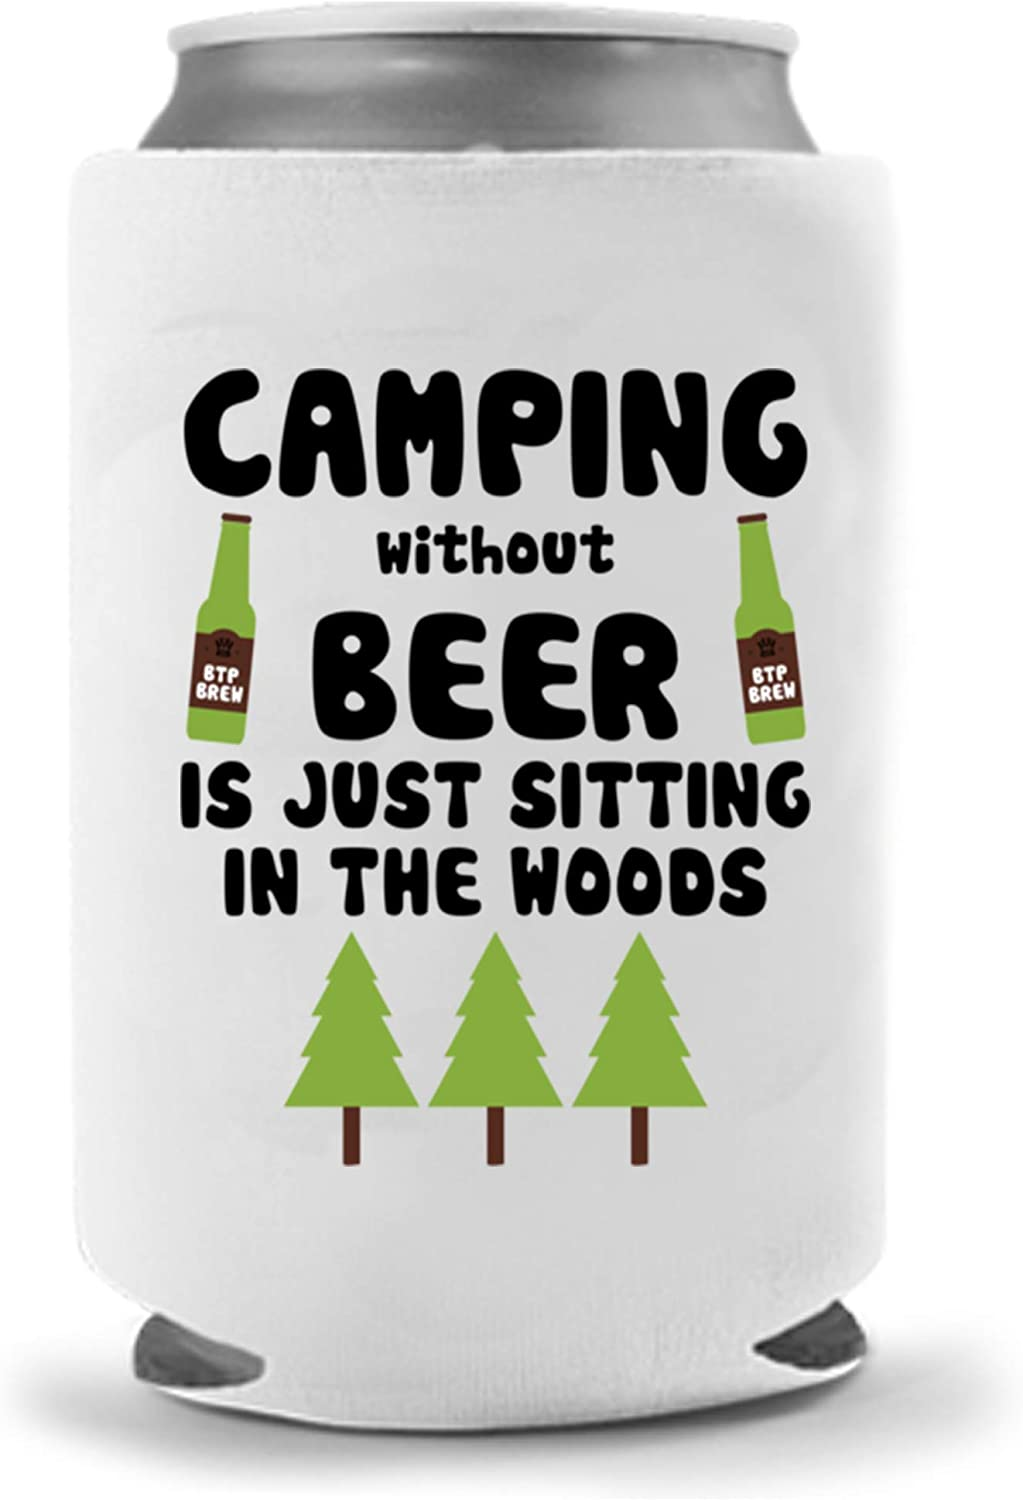 Camping Beer Holder - Camping without Beer is just Sitting in the Woods | Funny Novelty Can Cooler Coolie Huggie | Beer Beverage Holder Beer Gifts - Quality Neoprene Can Cooler Single